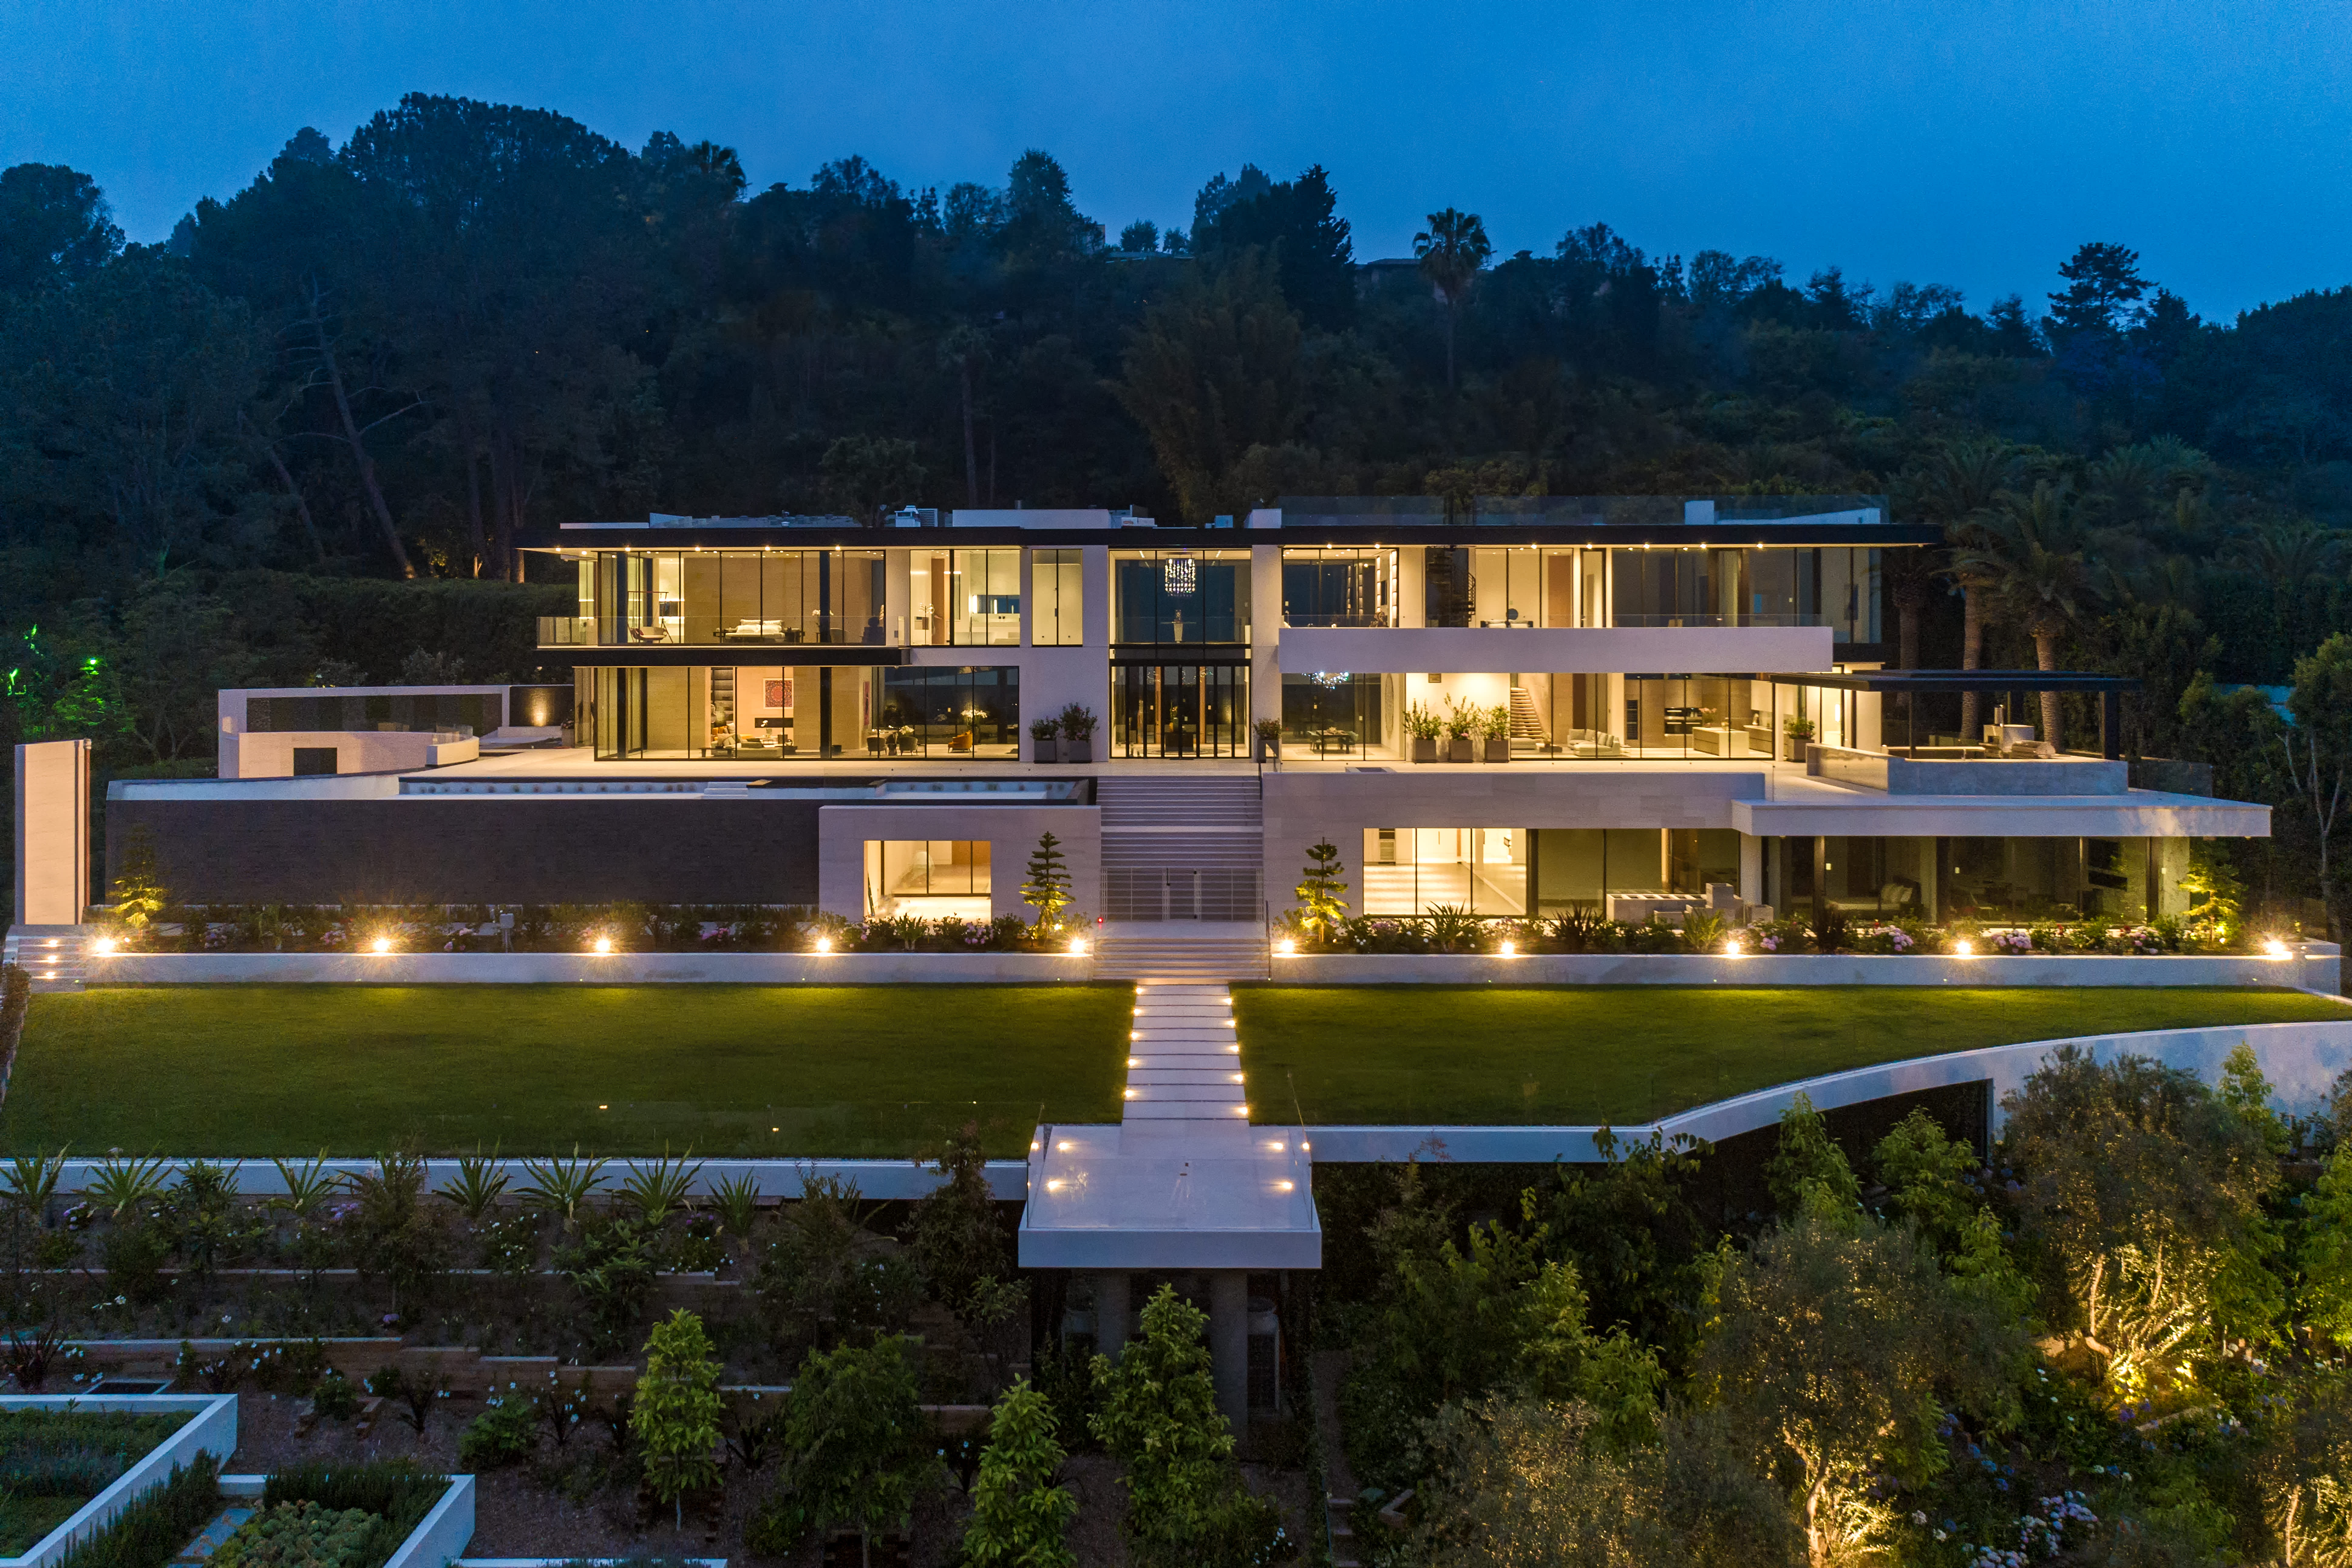 Photos: Inside the most expensive rental property in US